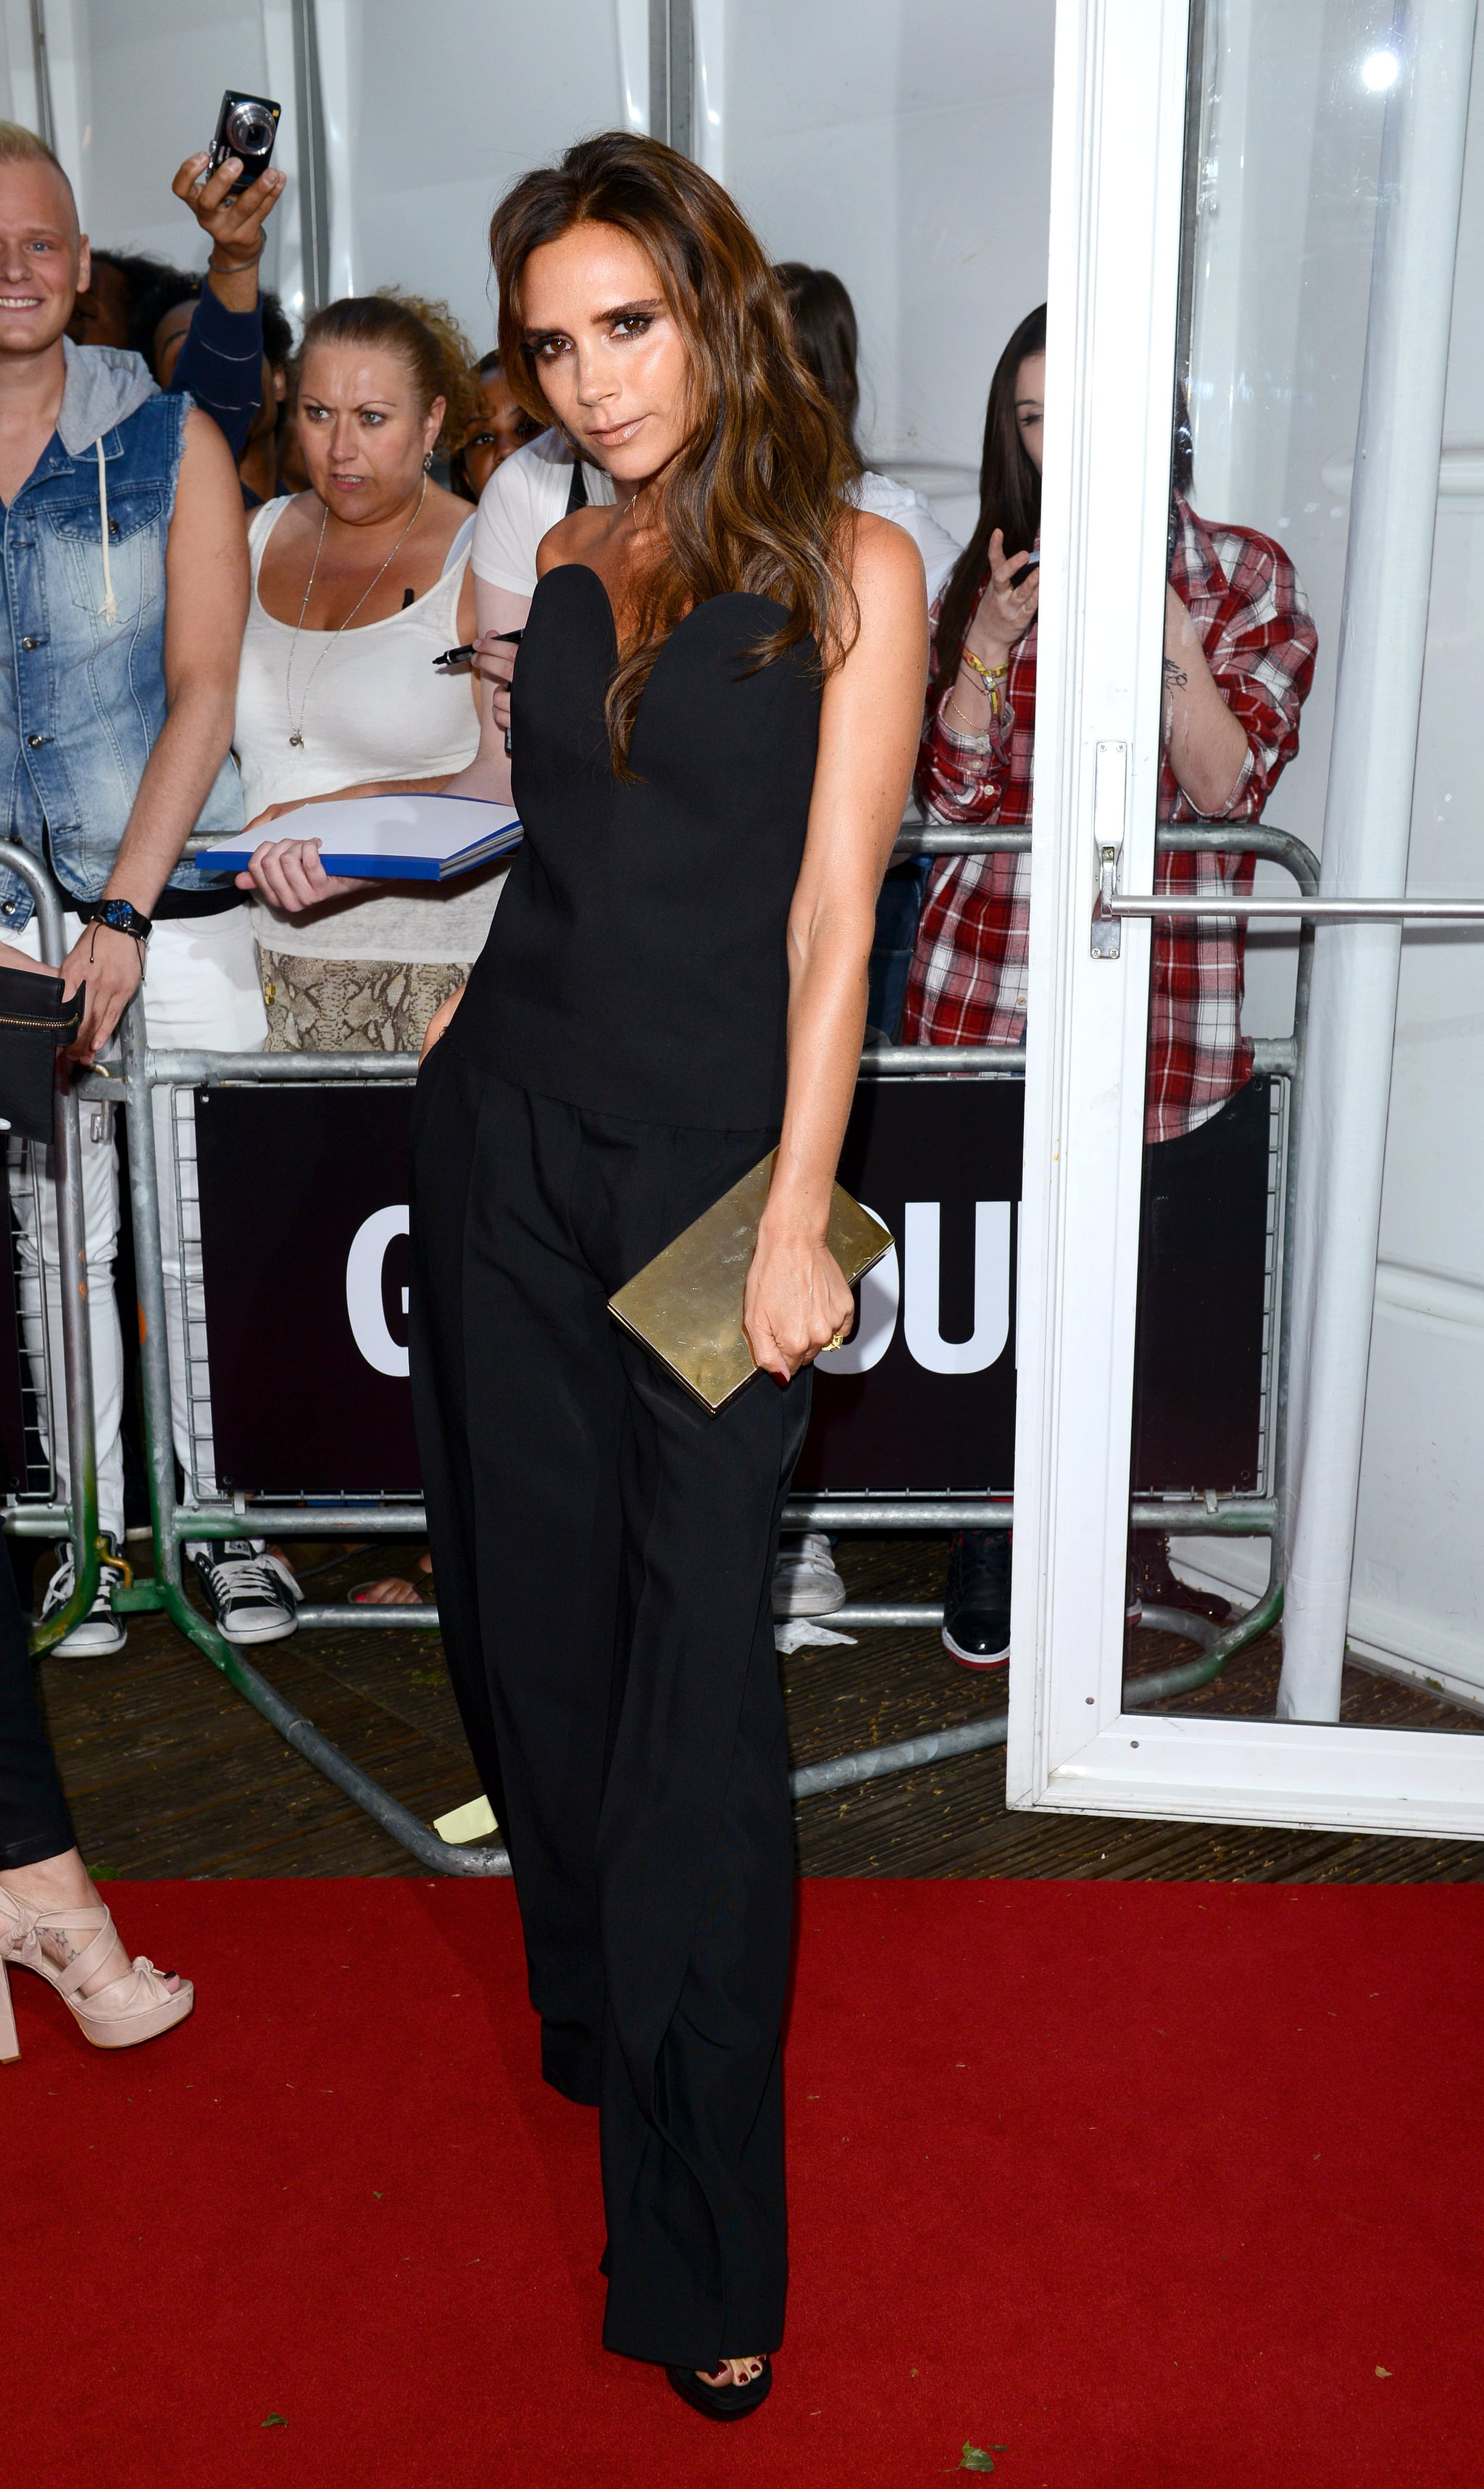 Victoria Beckham at the 2013 Glamour Women of the Year awards.